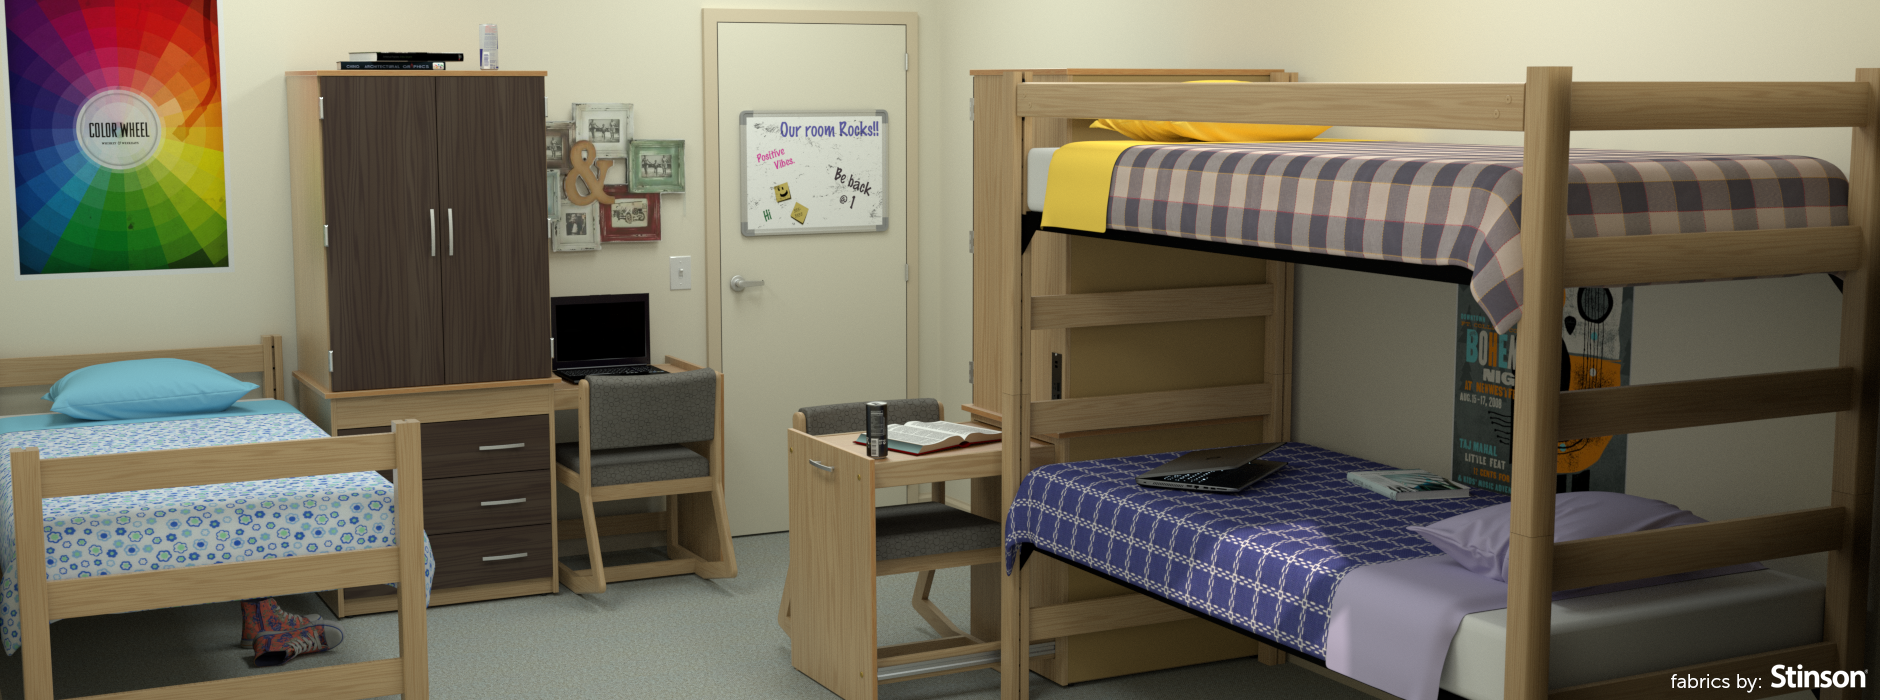 an example of our furniture in place this is a dorm room with our